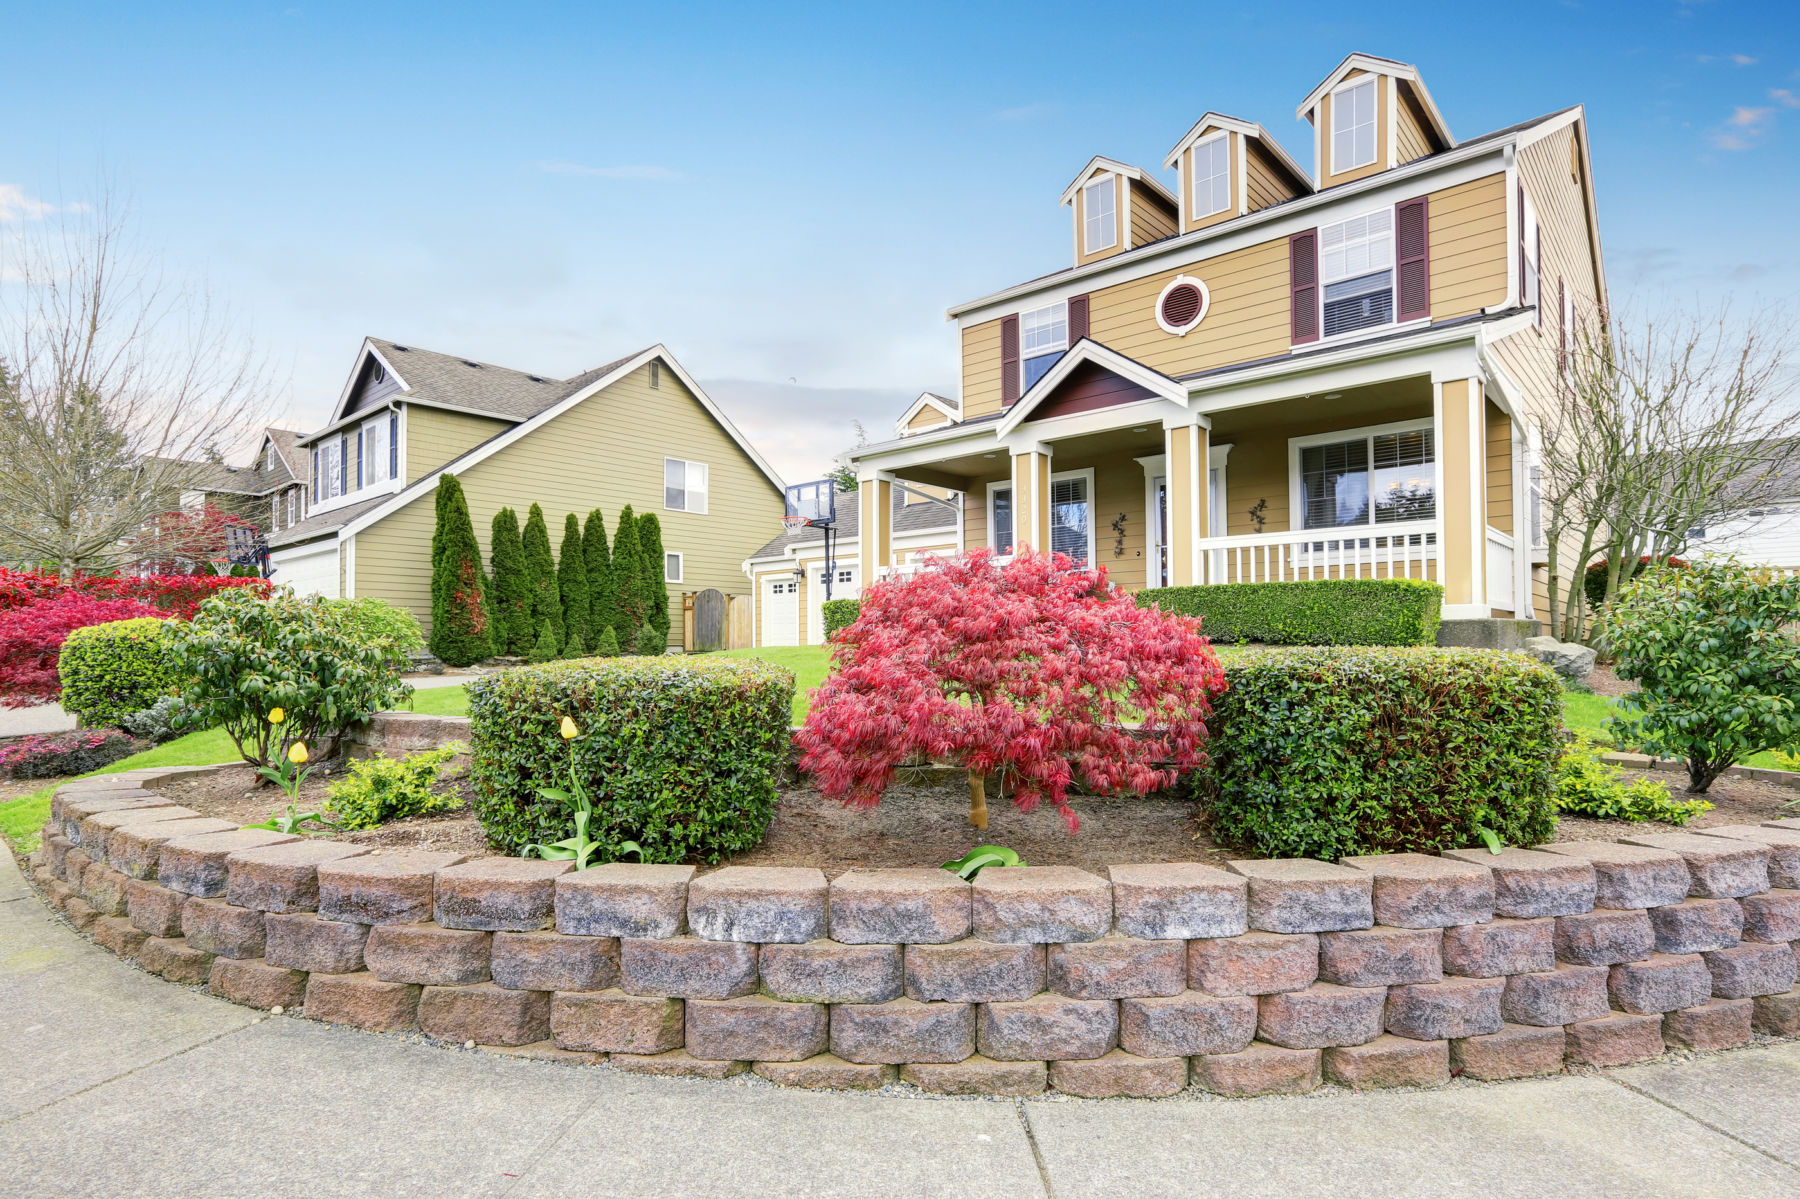 3 Low-Cost Tips to Increase your Home's Curb Appeal